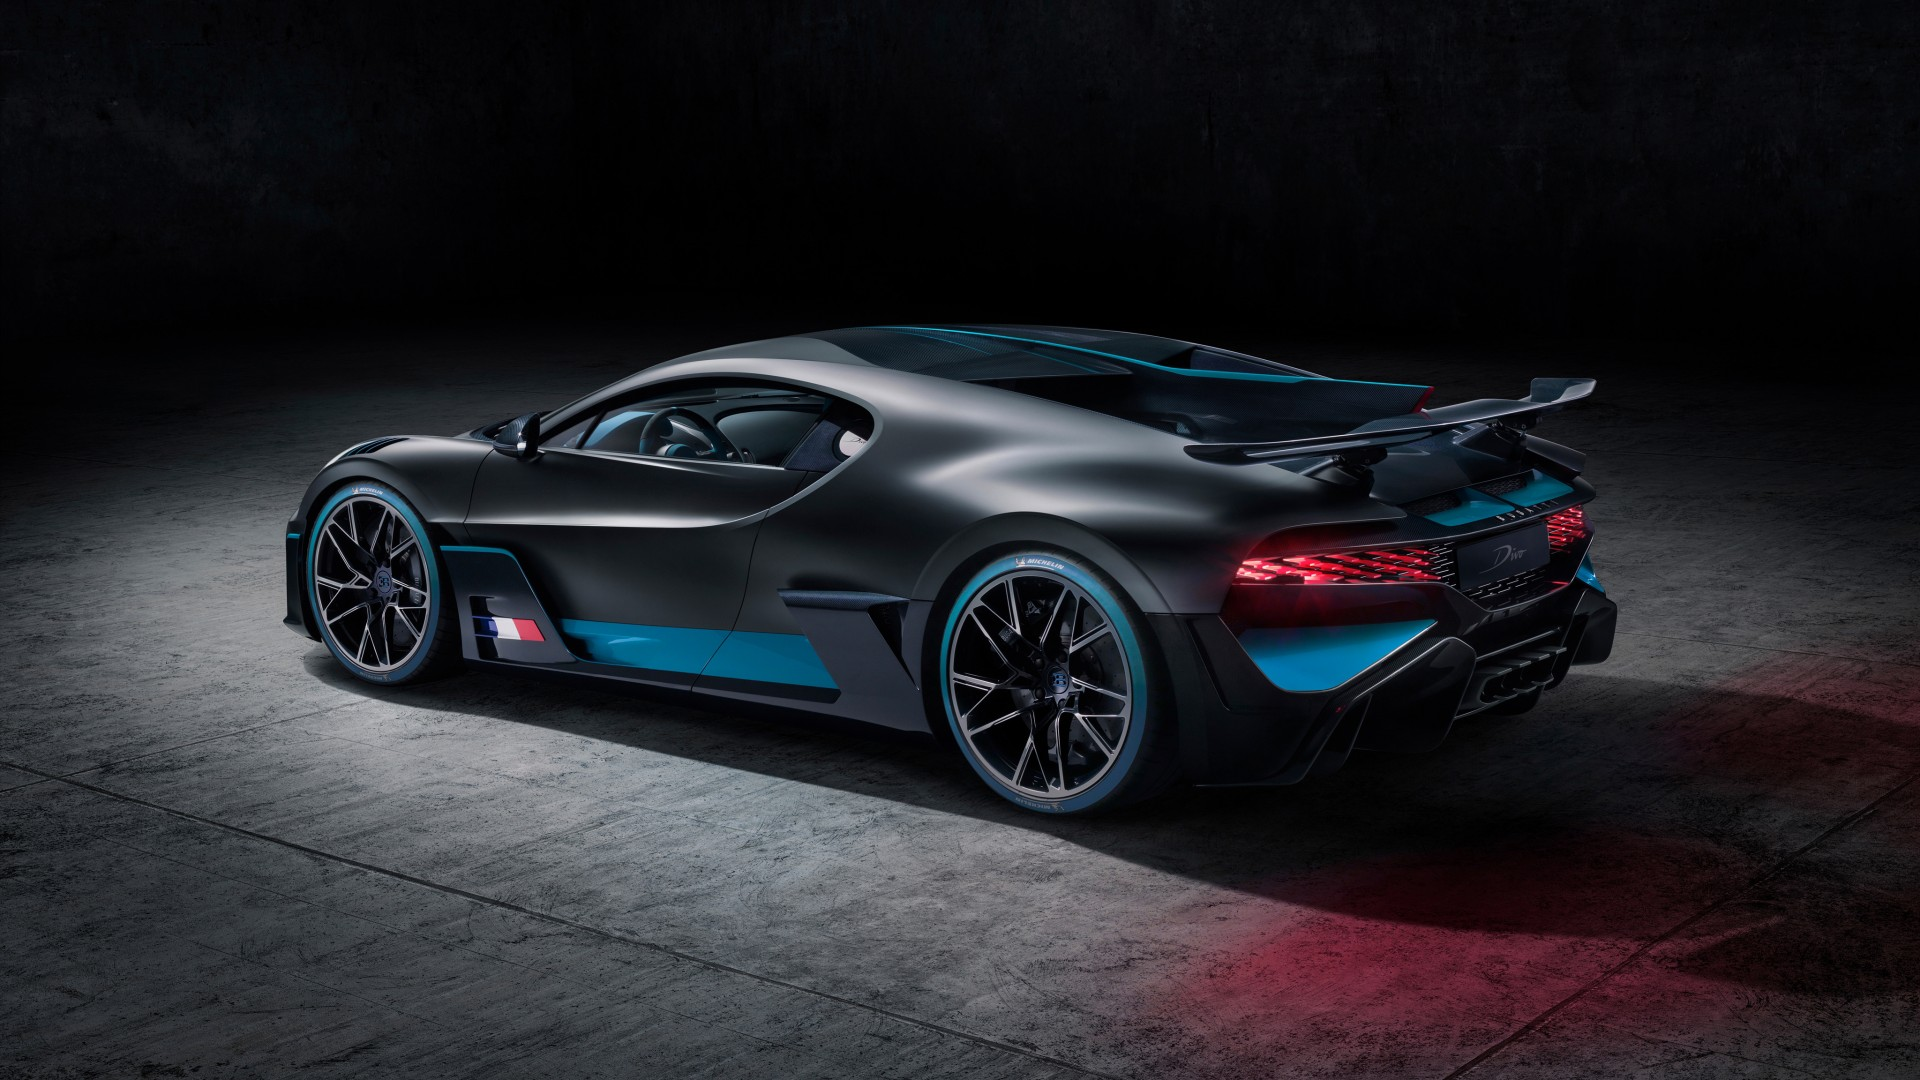 Hd Wallpaper Car Widescreen 2019 Bugatti Divo 4k 12 Wallpaper Hd Car Wallpapers Id